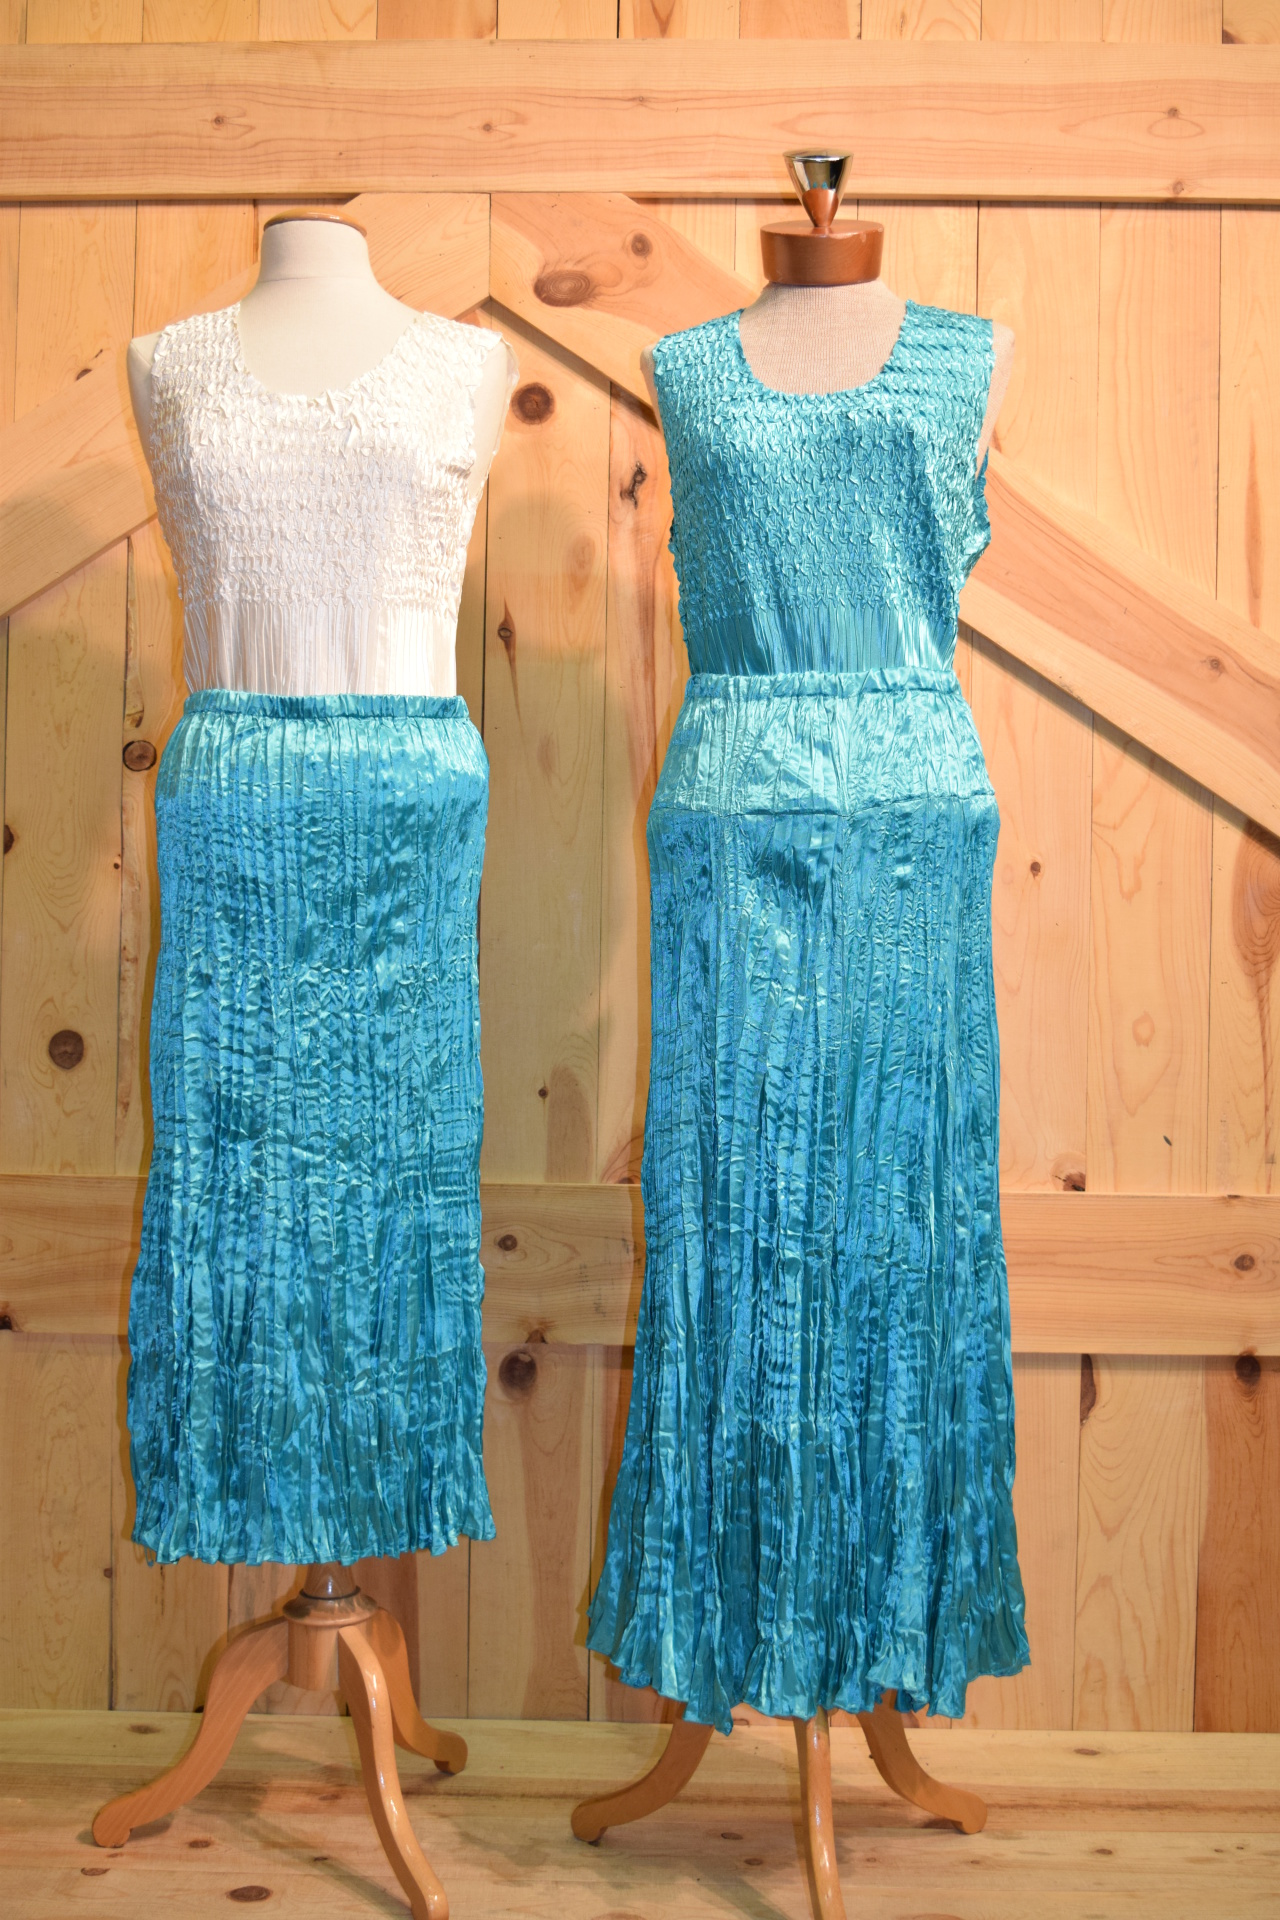 "AQUA - #572 - 31"" & #574 - 36"" SATIN SKIRT                         WAS $79.95 - SALE $19.95"